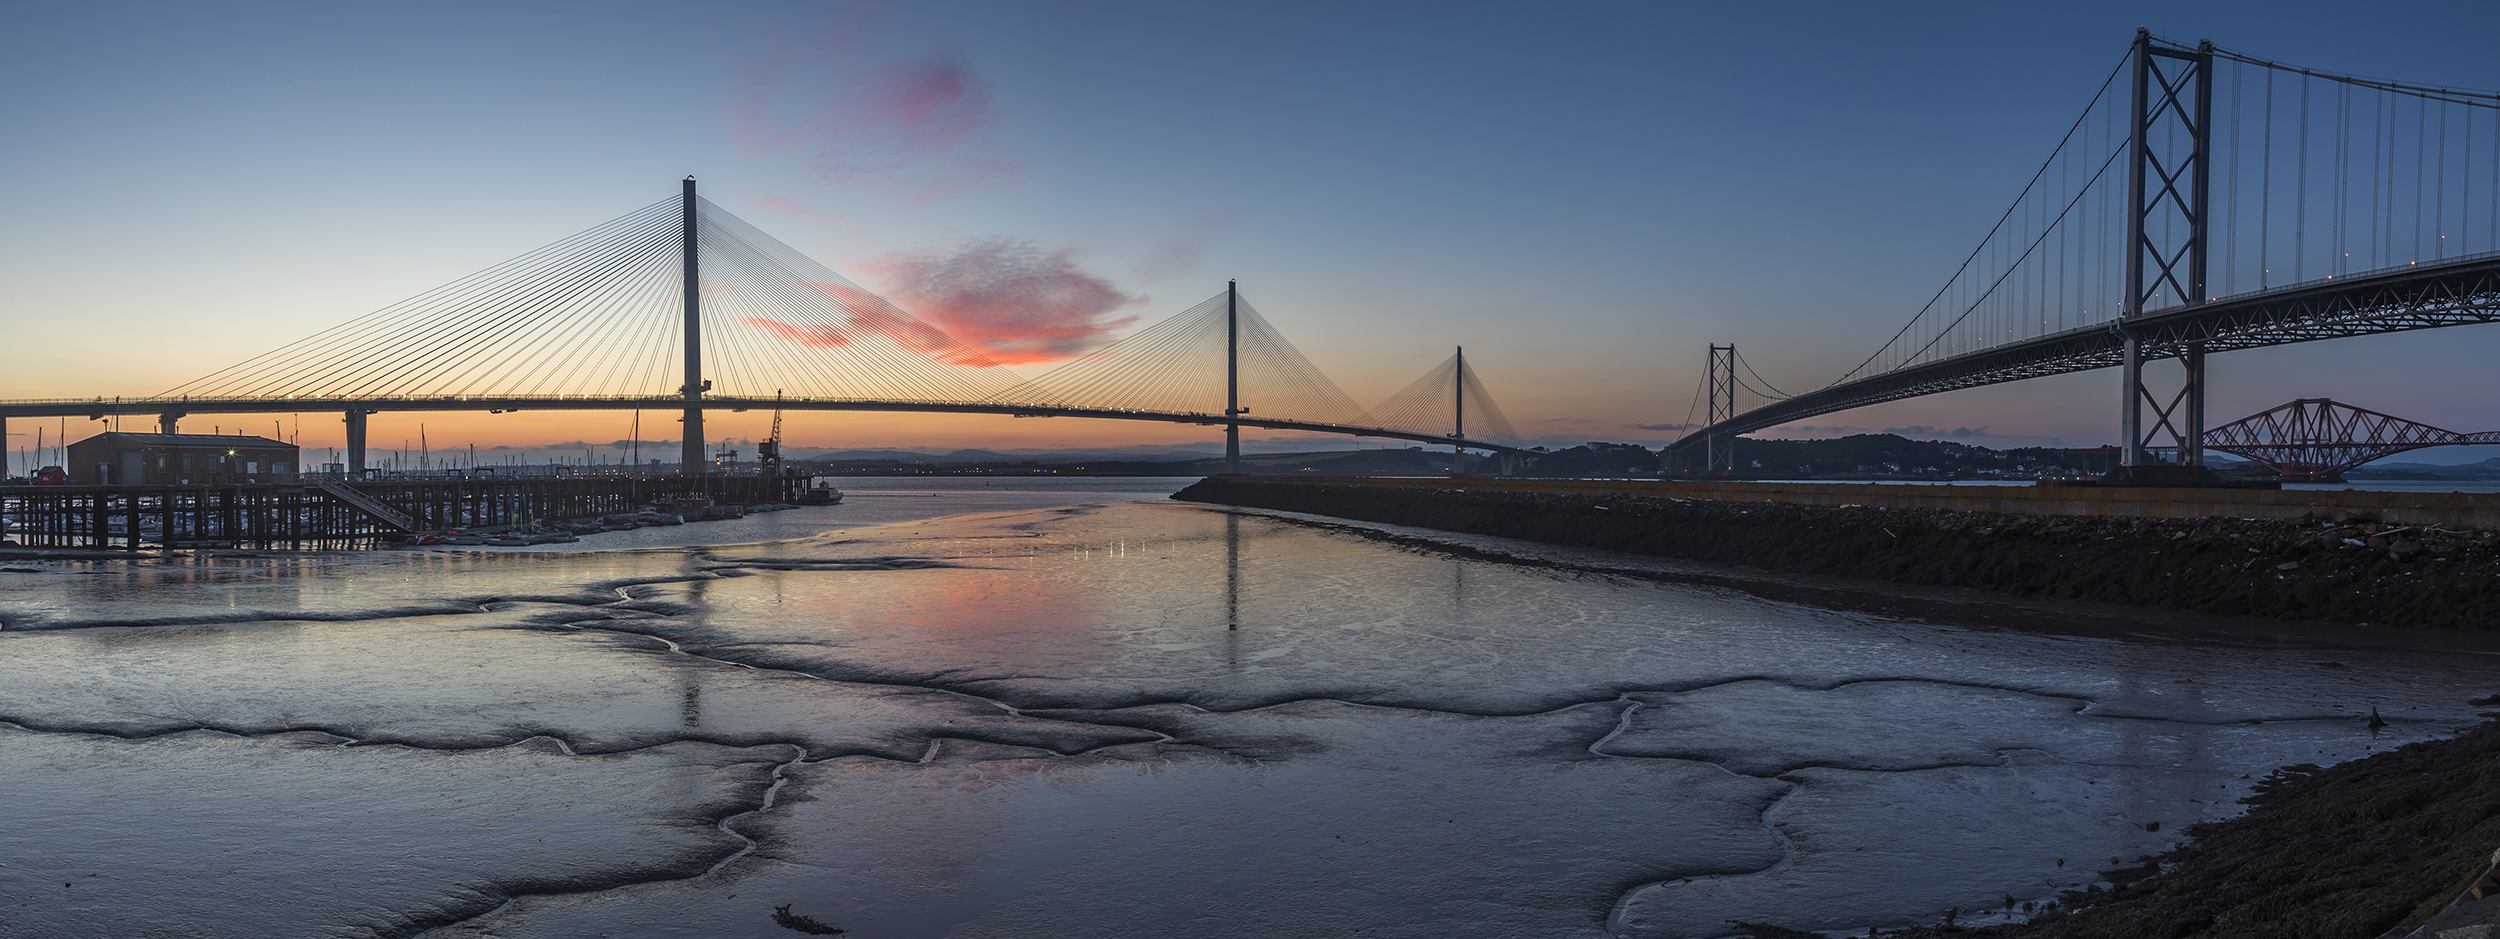 Dissing_Weitling_Queensferry_Crossing_Martin_Mclaughlin_2500.jpg